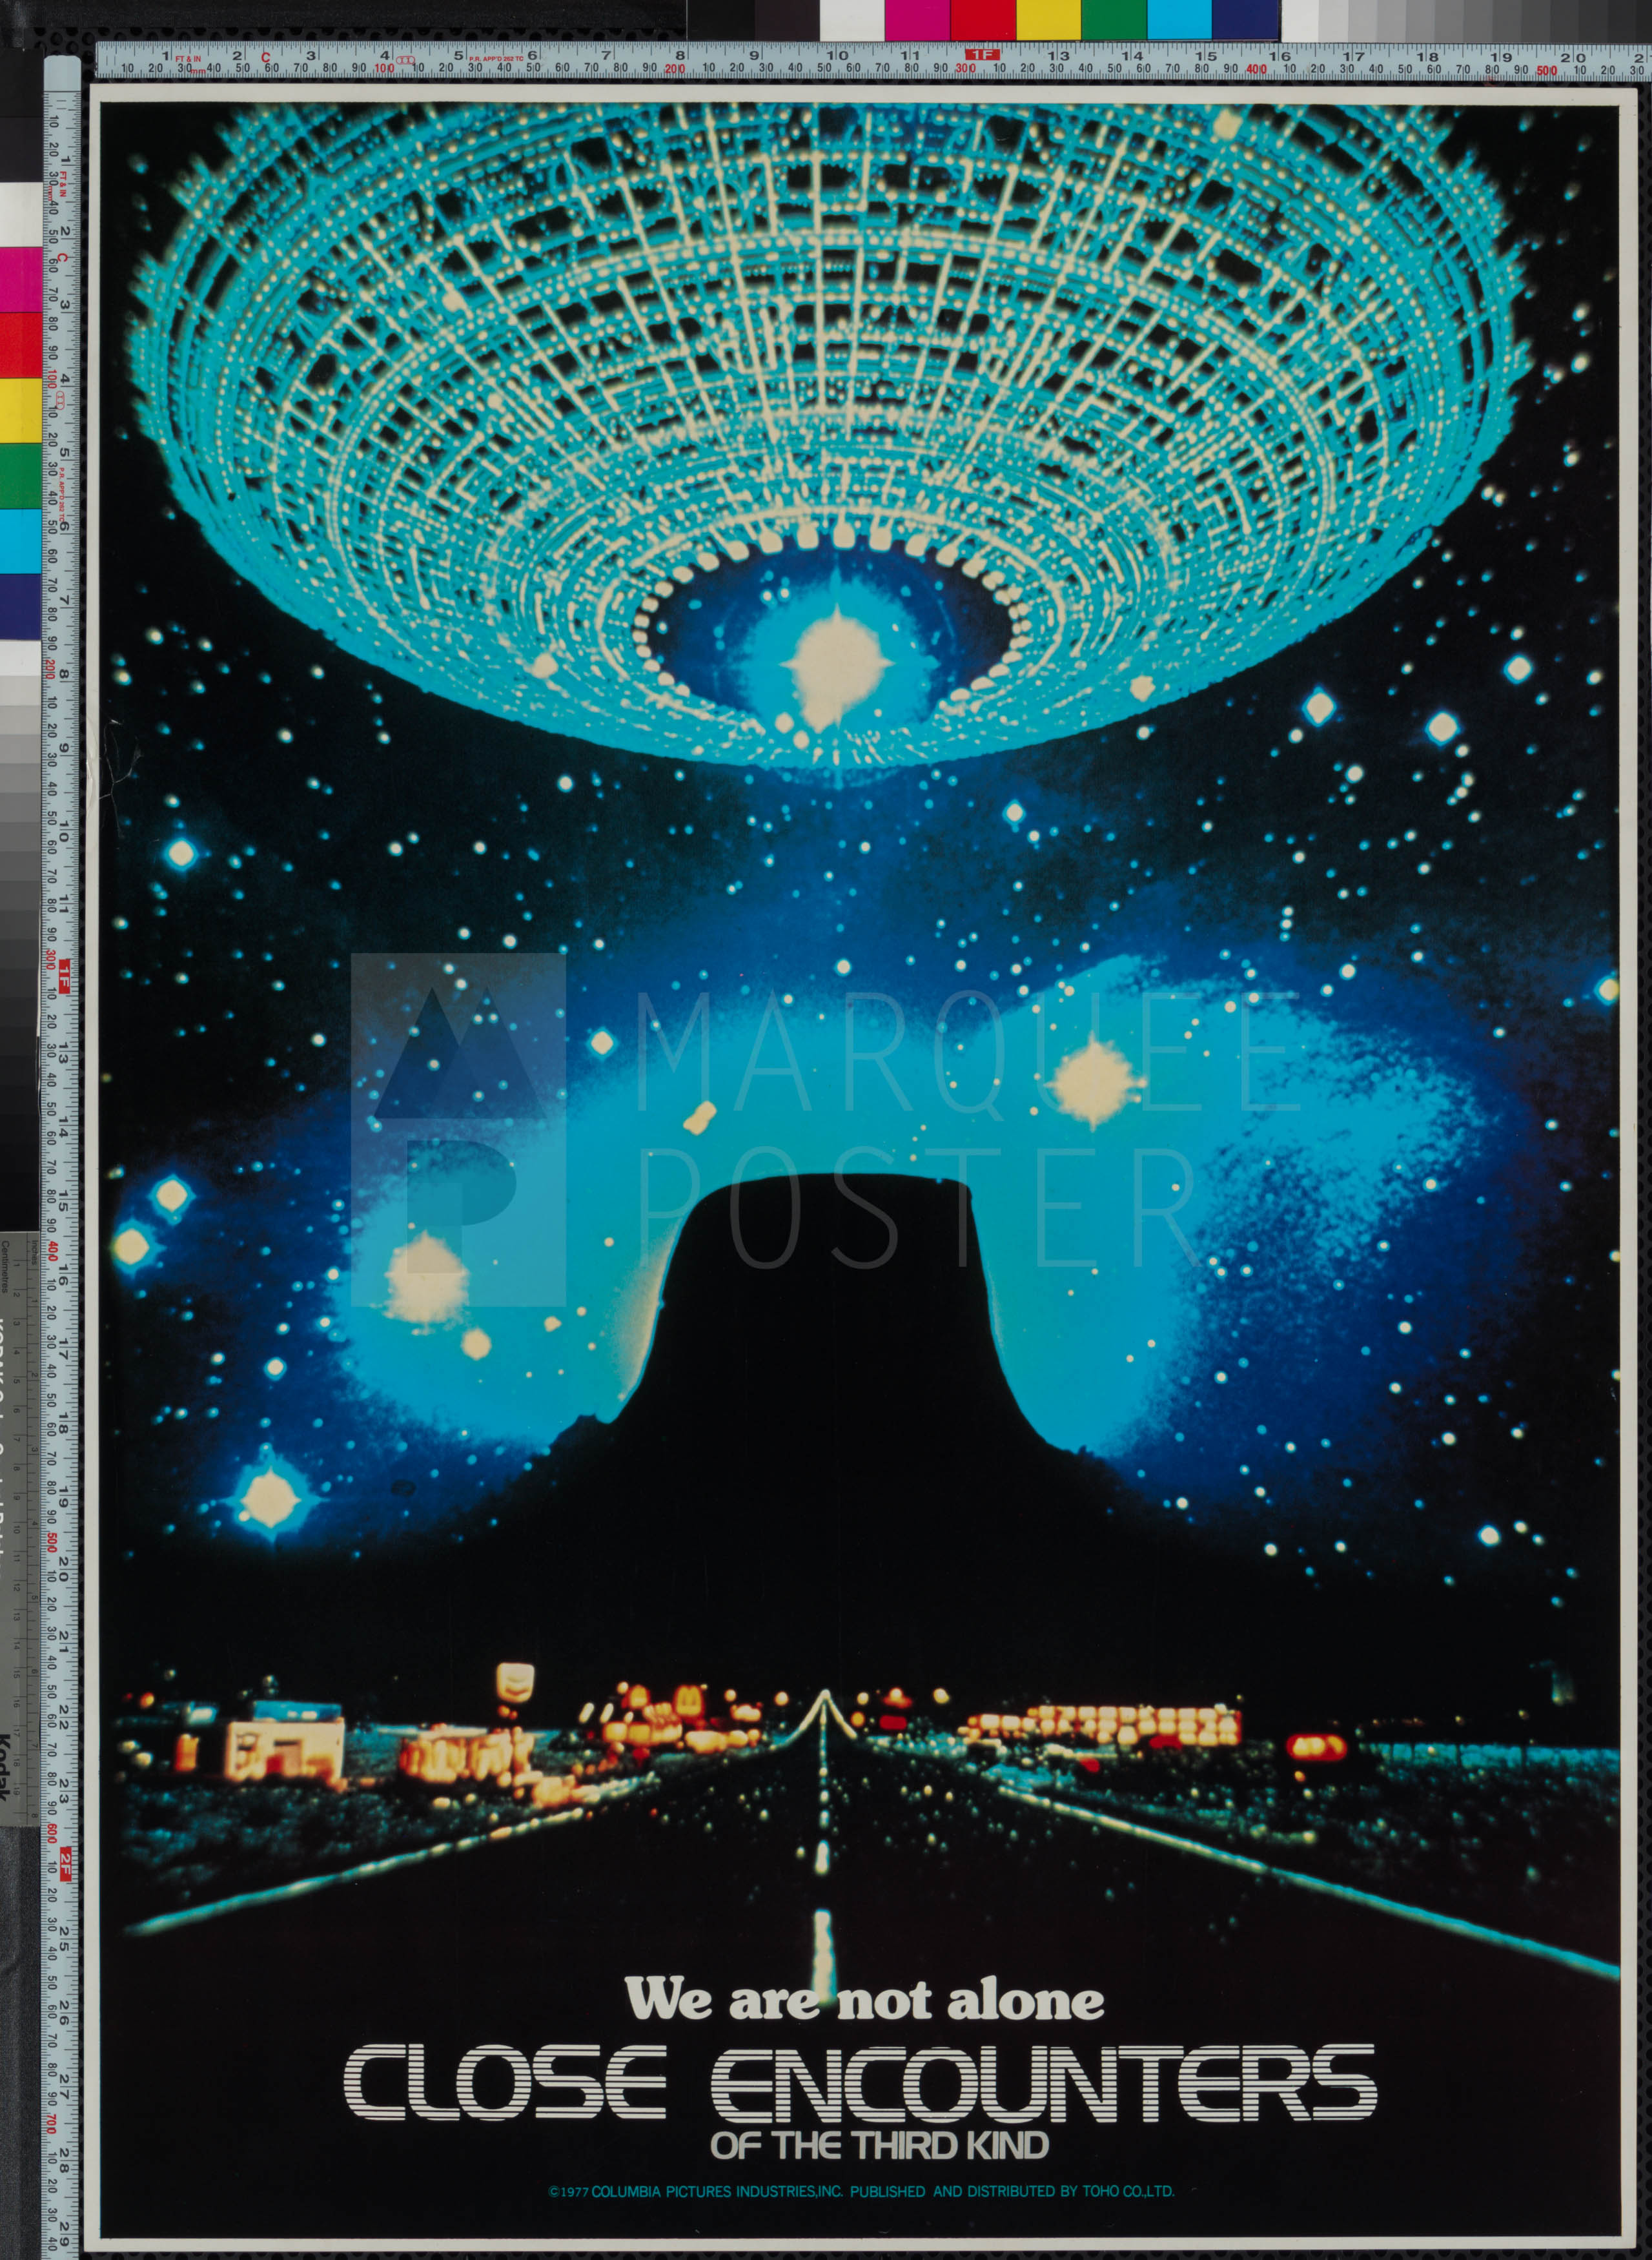 12-close-encounters-of-the-third-kind-english-style-commercial-japanese-b2-1977-02